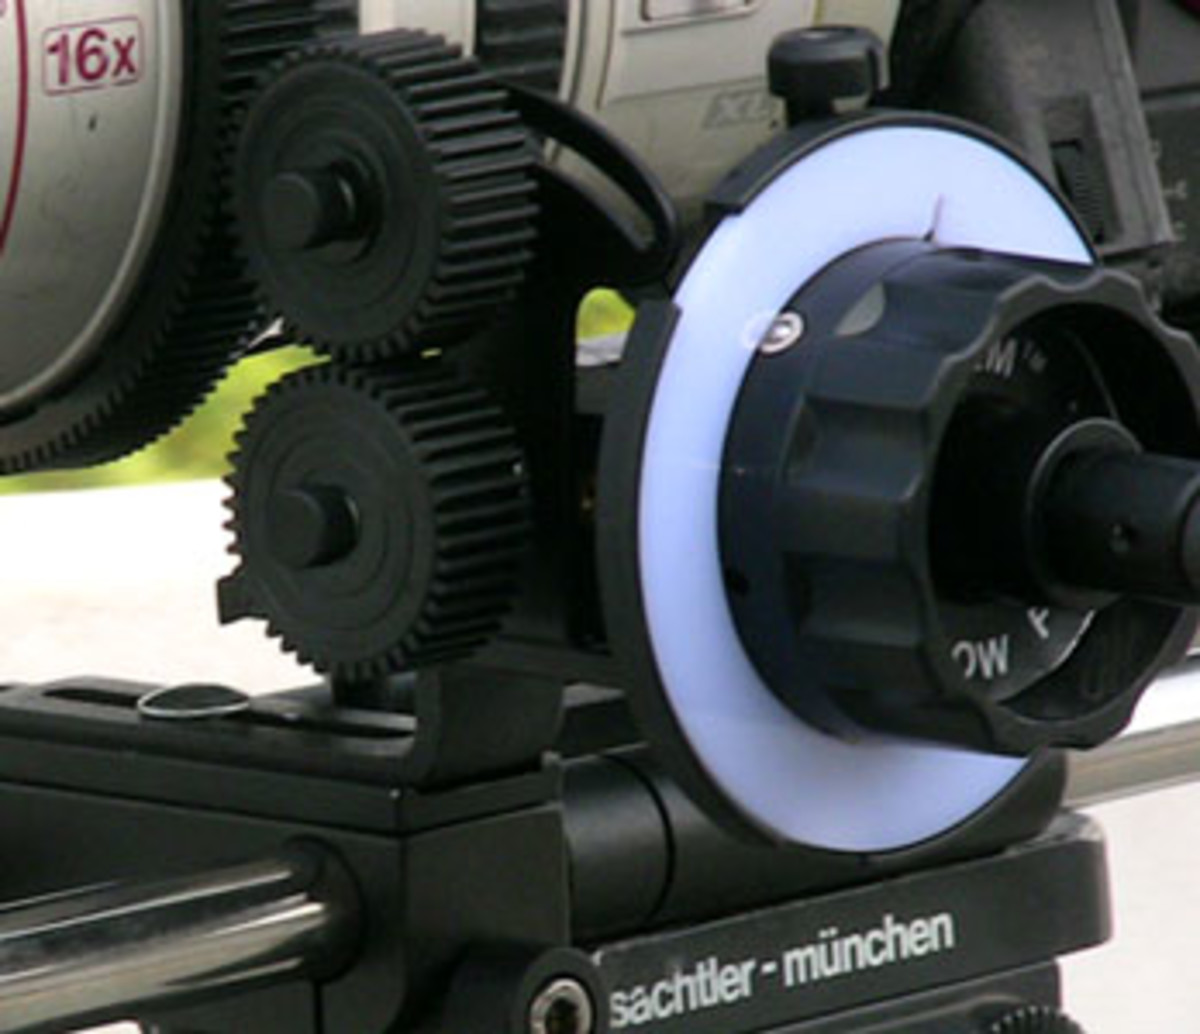 A Follow-focus device. Note the white wheel on which the Focus puller will mark his distances.